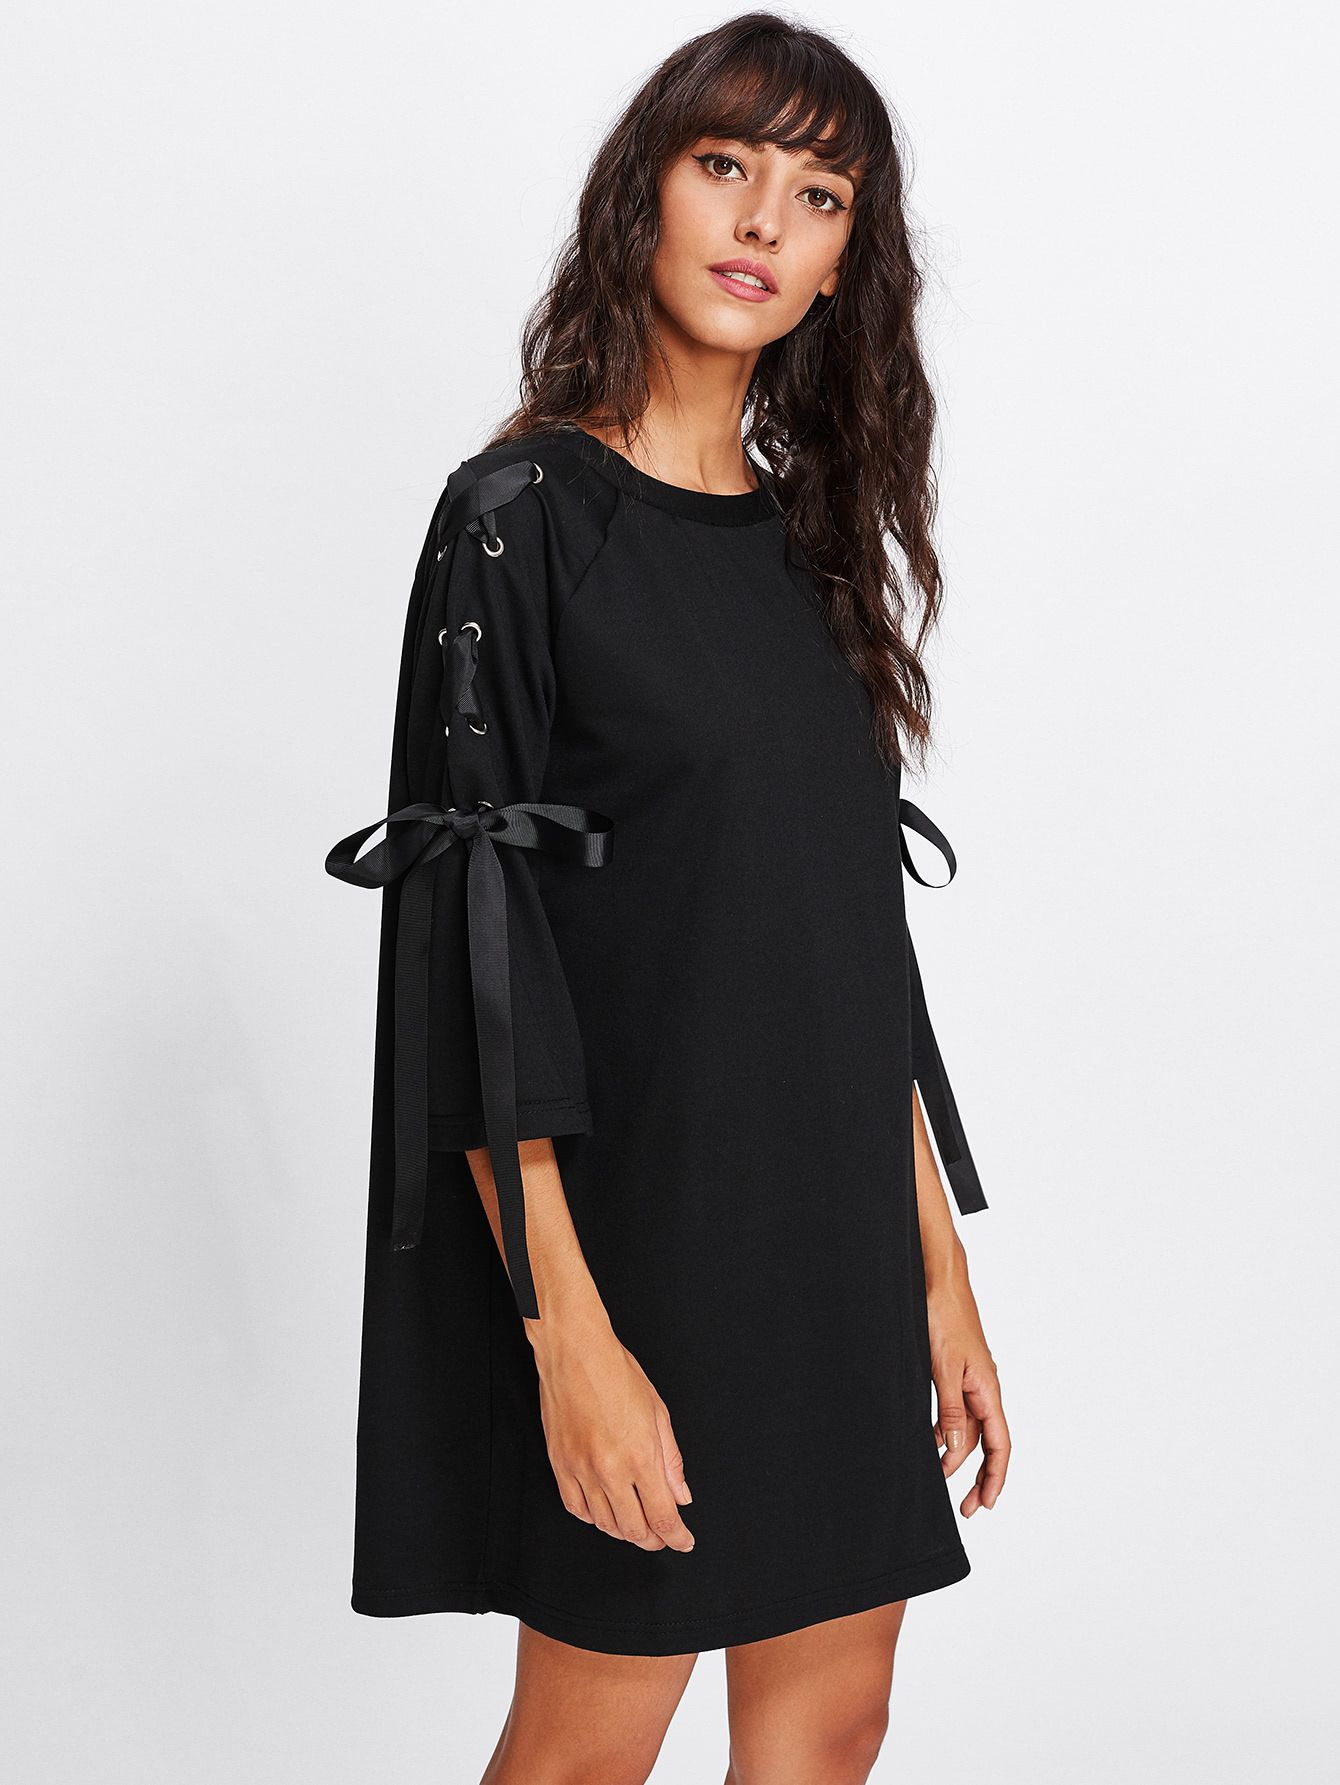 2d42c9be3044 Shop Ribbon Lace Up Raglan Sleeve Marled Tee Dress online. SheIn offers  Ribbon Lace Up